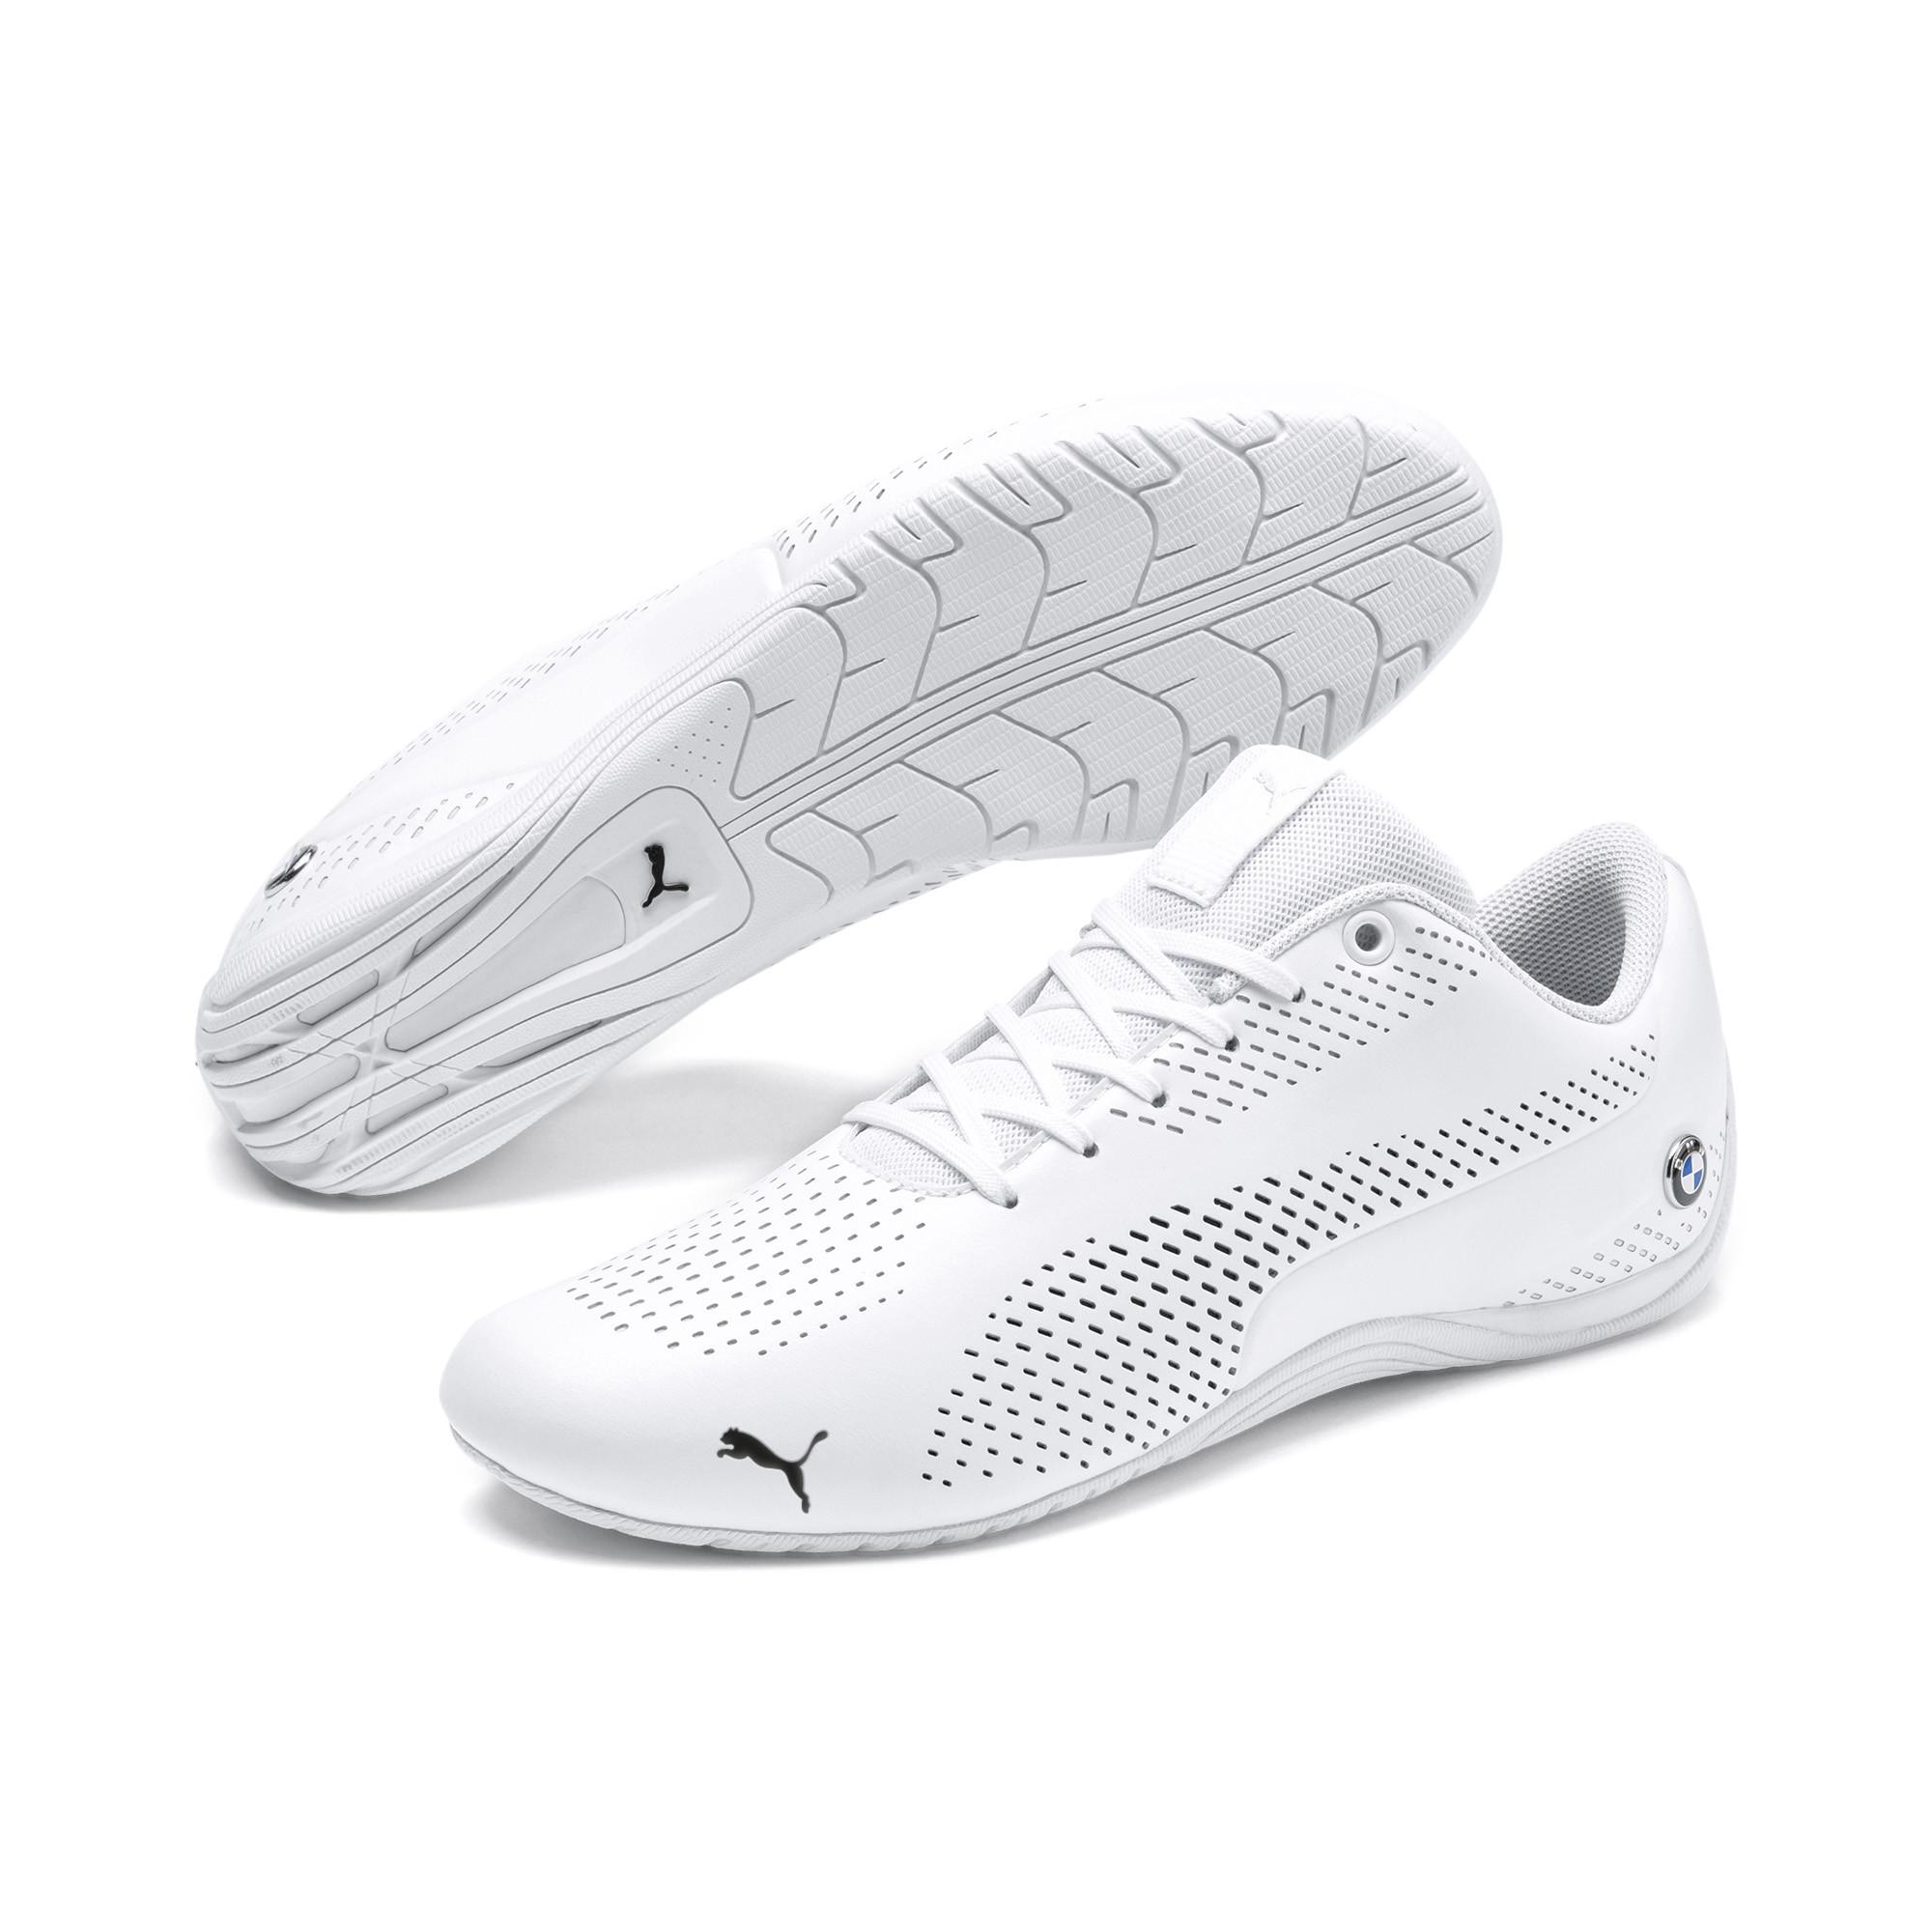 e41e6bfb1d36 PUMA - White Bmw Mms Drift Cat 5 Ultra Ii Men s Sneakers for Men - Lyst.  View fullscreen